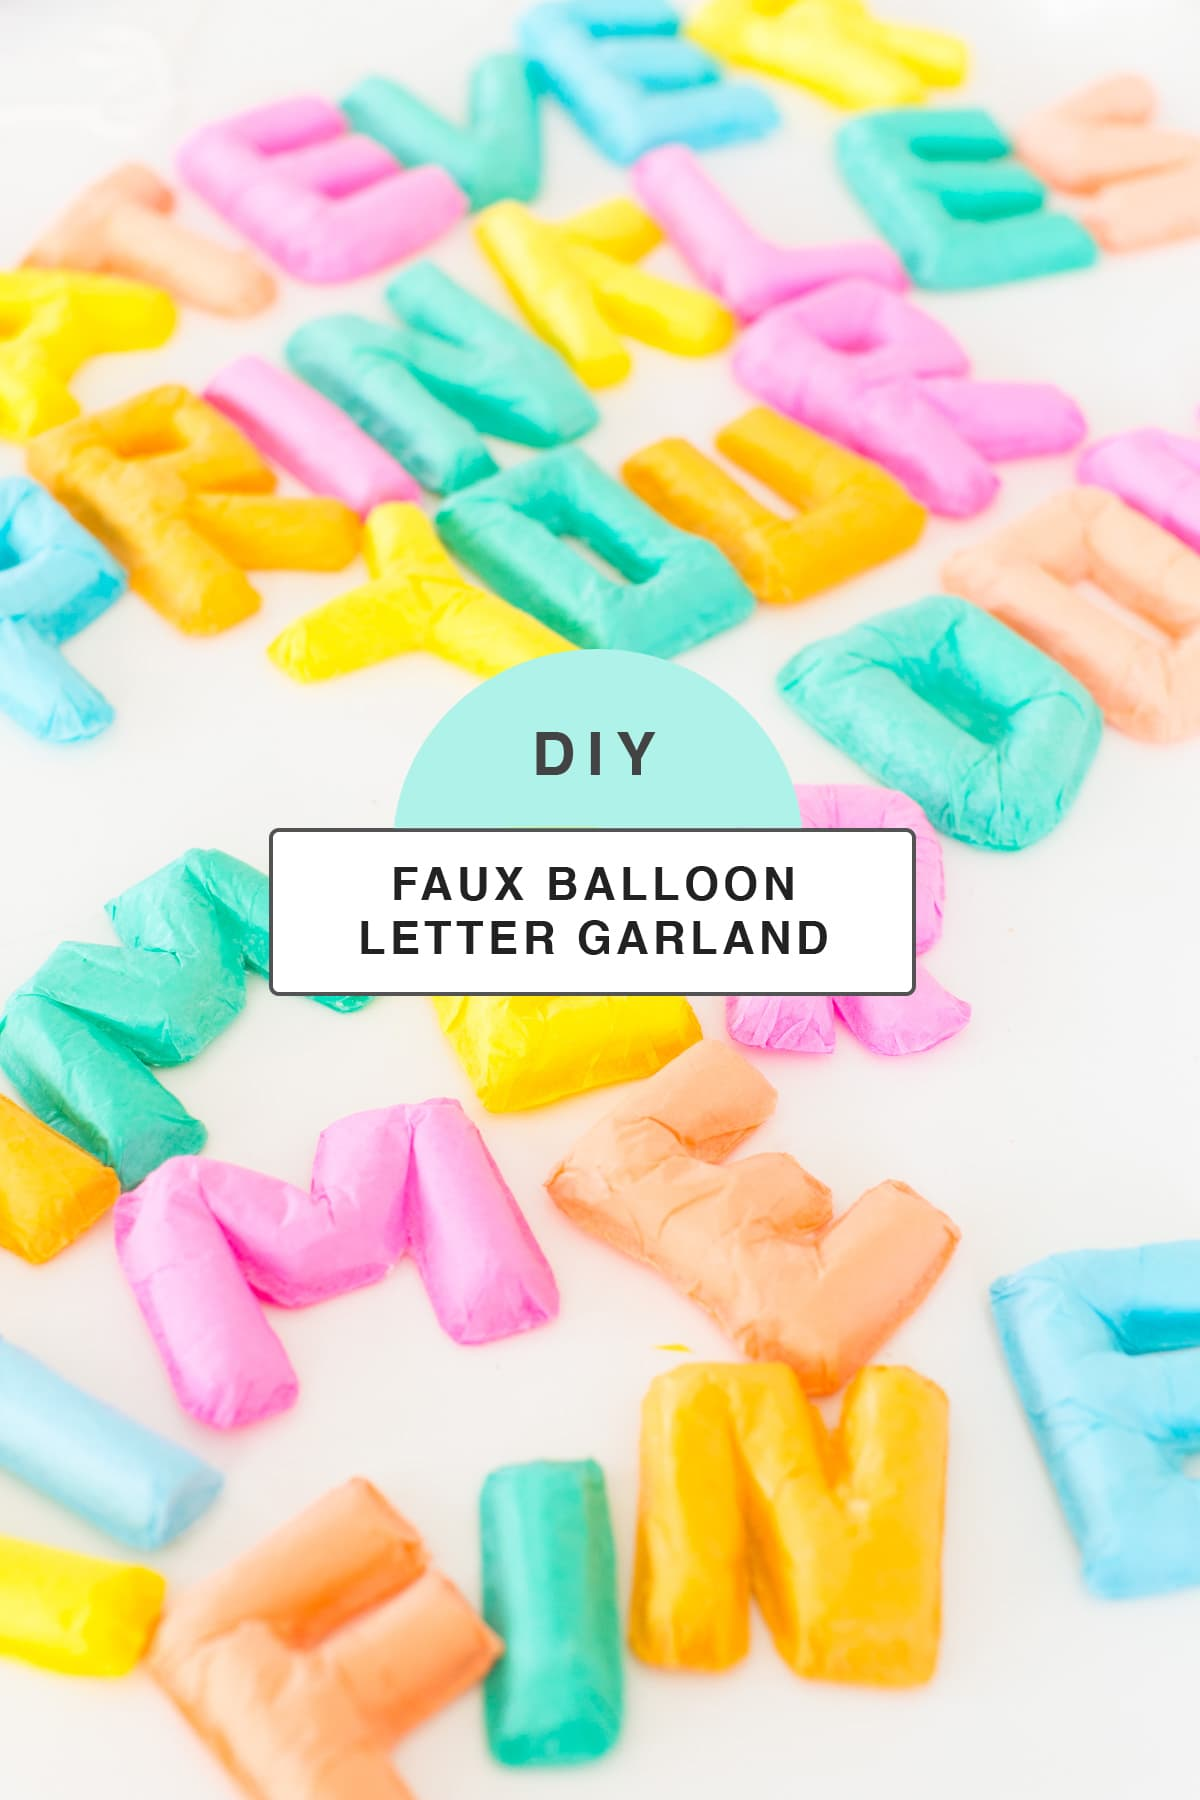 letter balloons that won't deflate - Faux Balloon DIY Letter Garland by Houston lifestyle blogger Ashley Rose of Sugar and Cloth #diy #balloons #balloongarland #garland #decor #party #ideas #howto